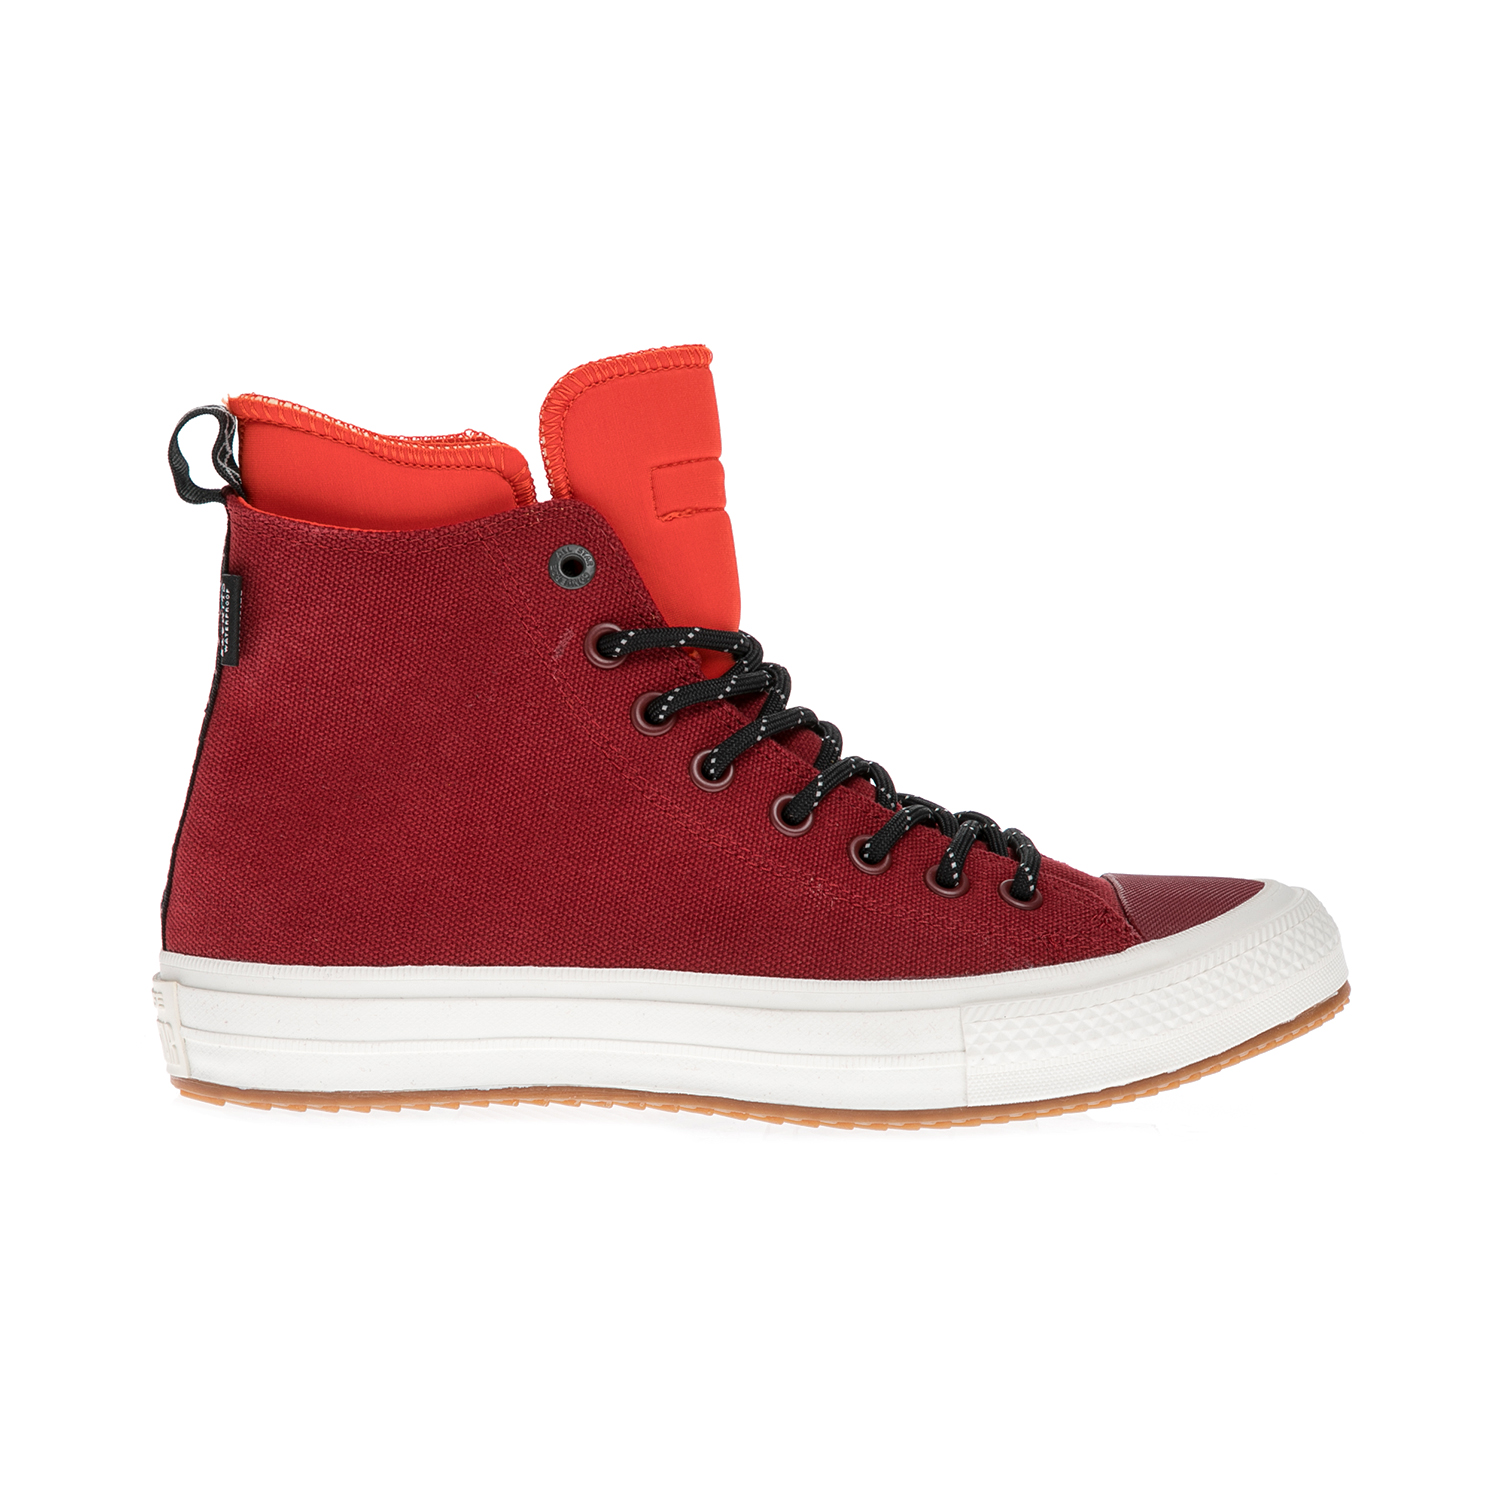 CONVERSE – Unisex παπούτσια Chuck Taylor All Star II Boot κόκκινα